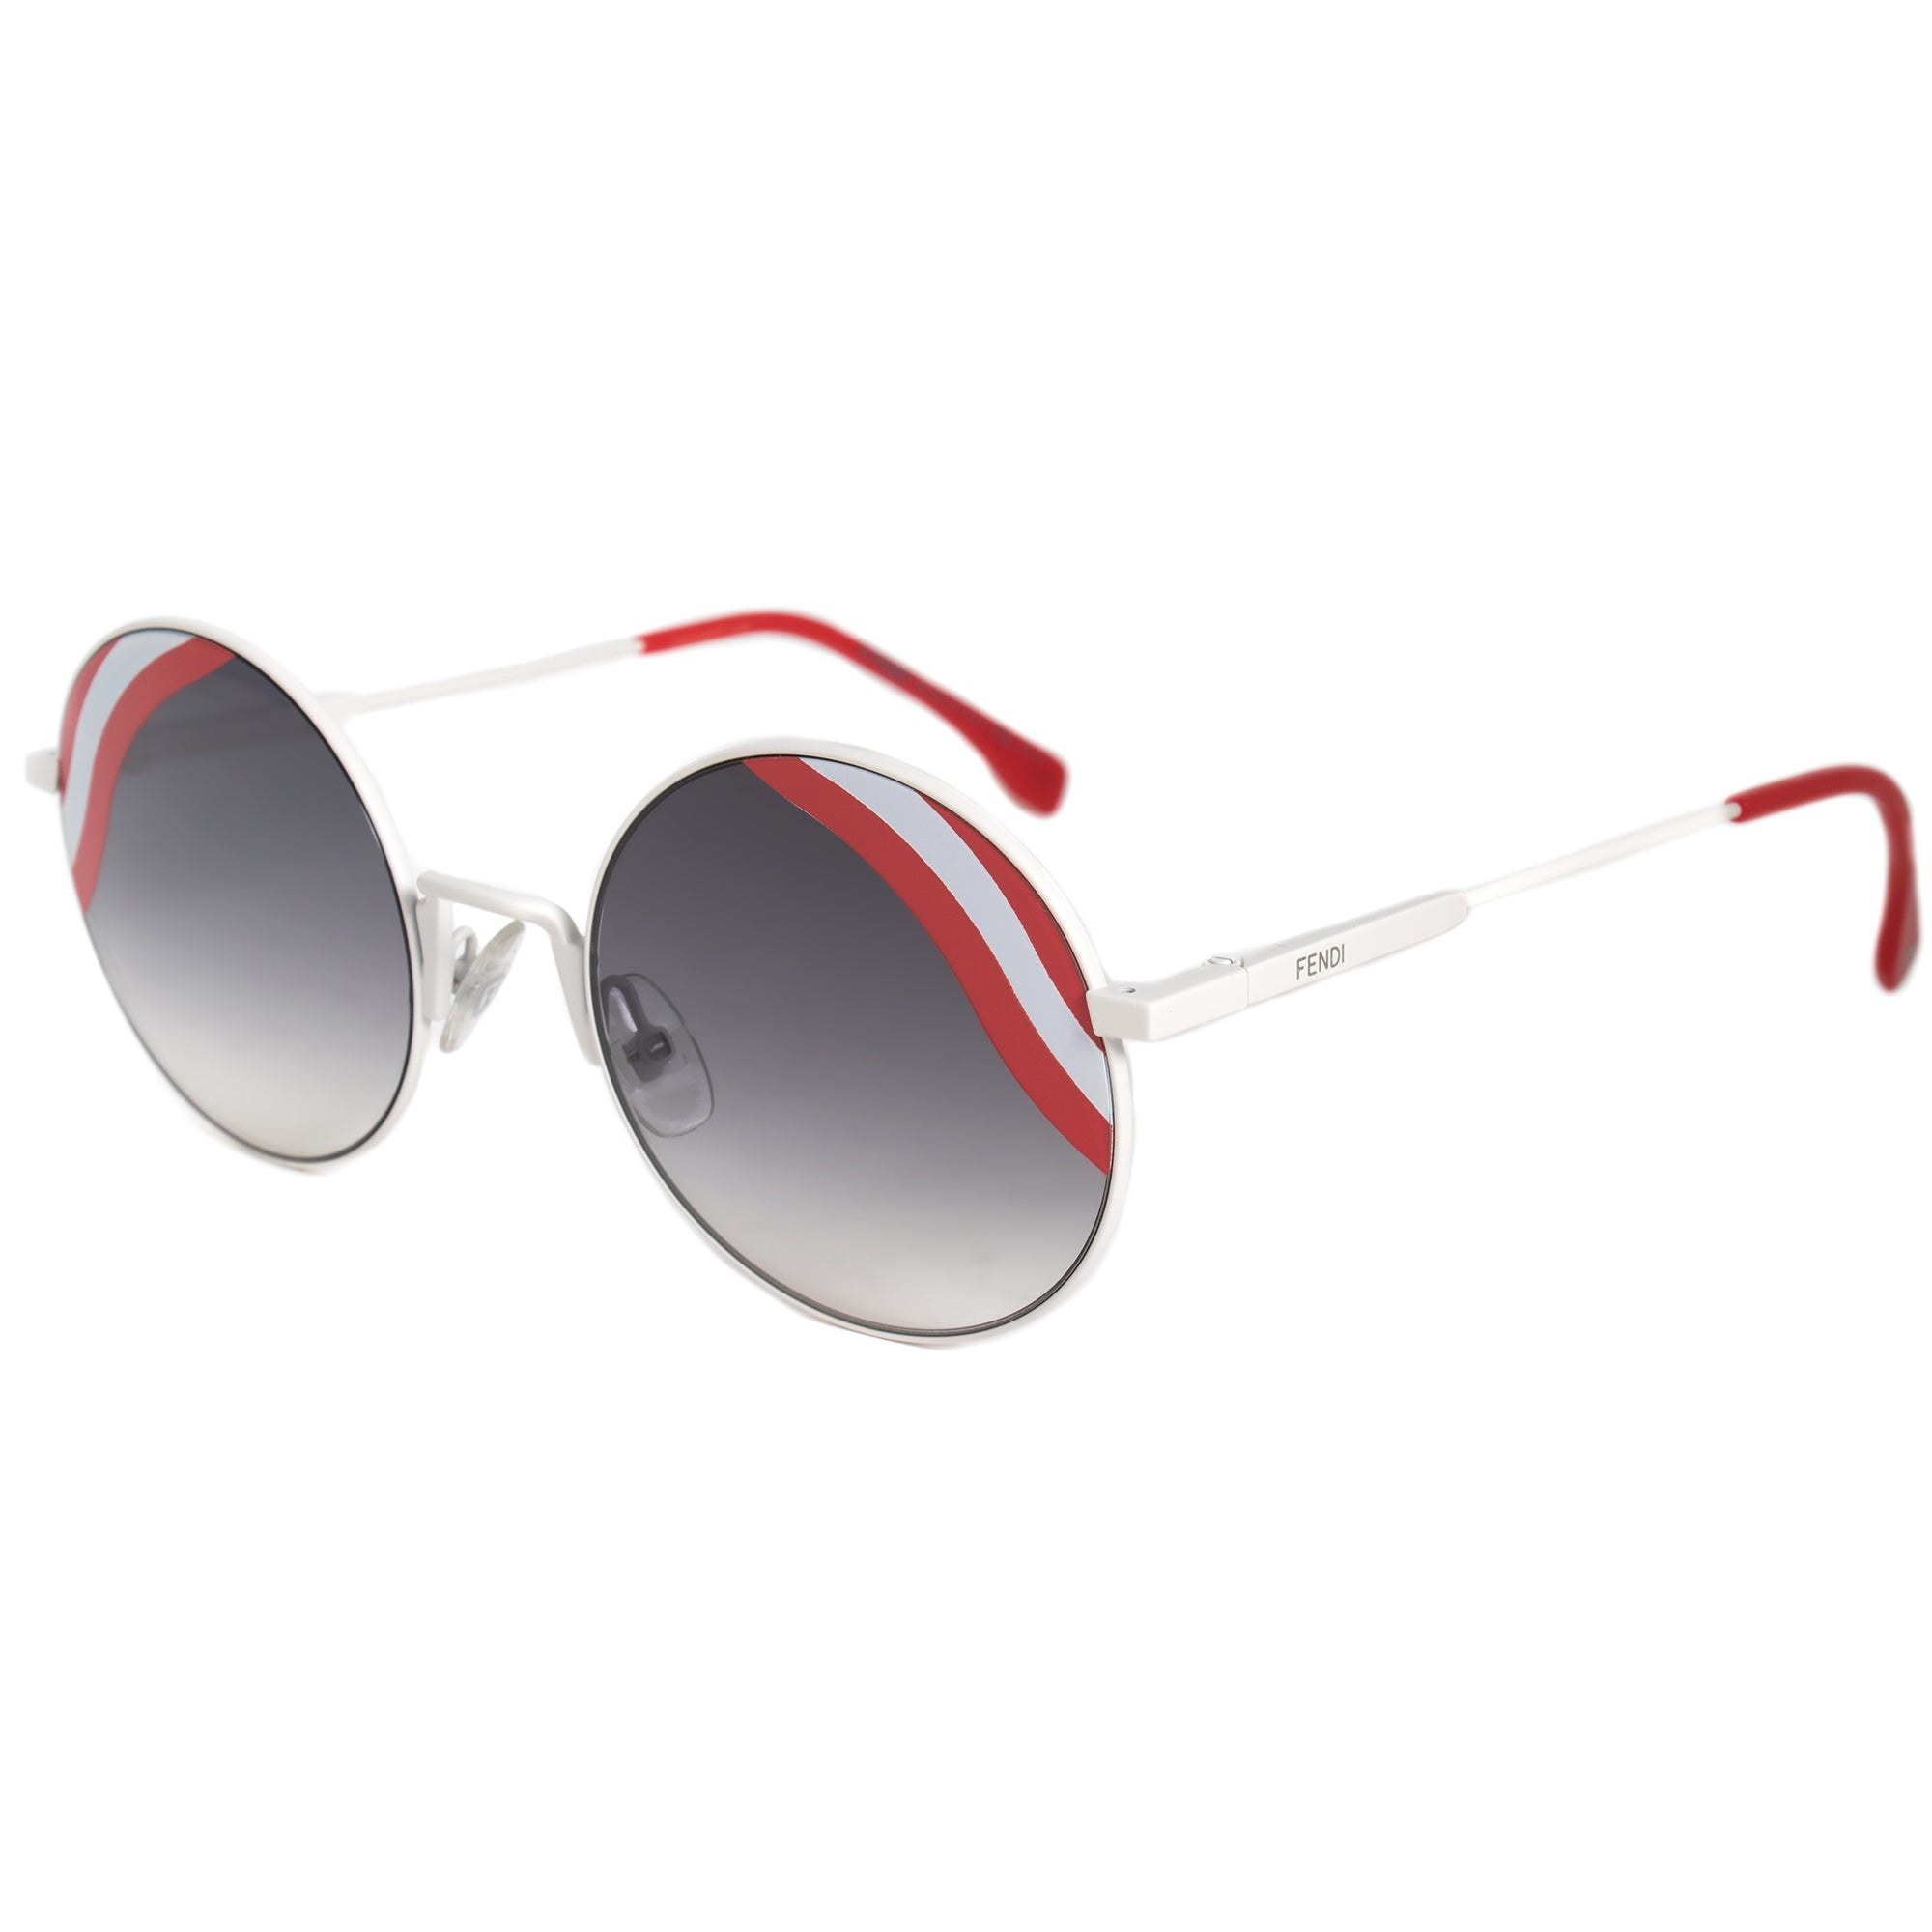 Fendi Waves Round Sunglasses FF0248S VK6 9O 53